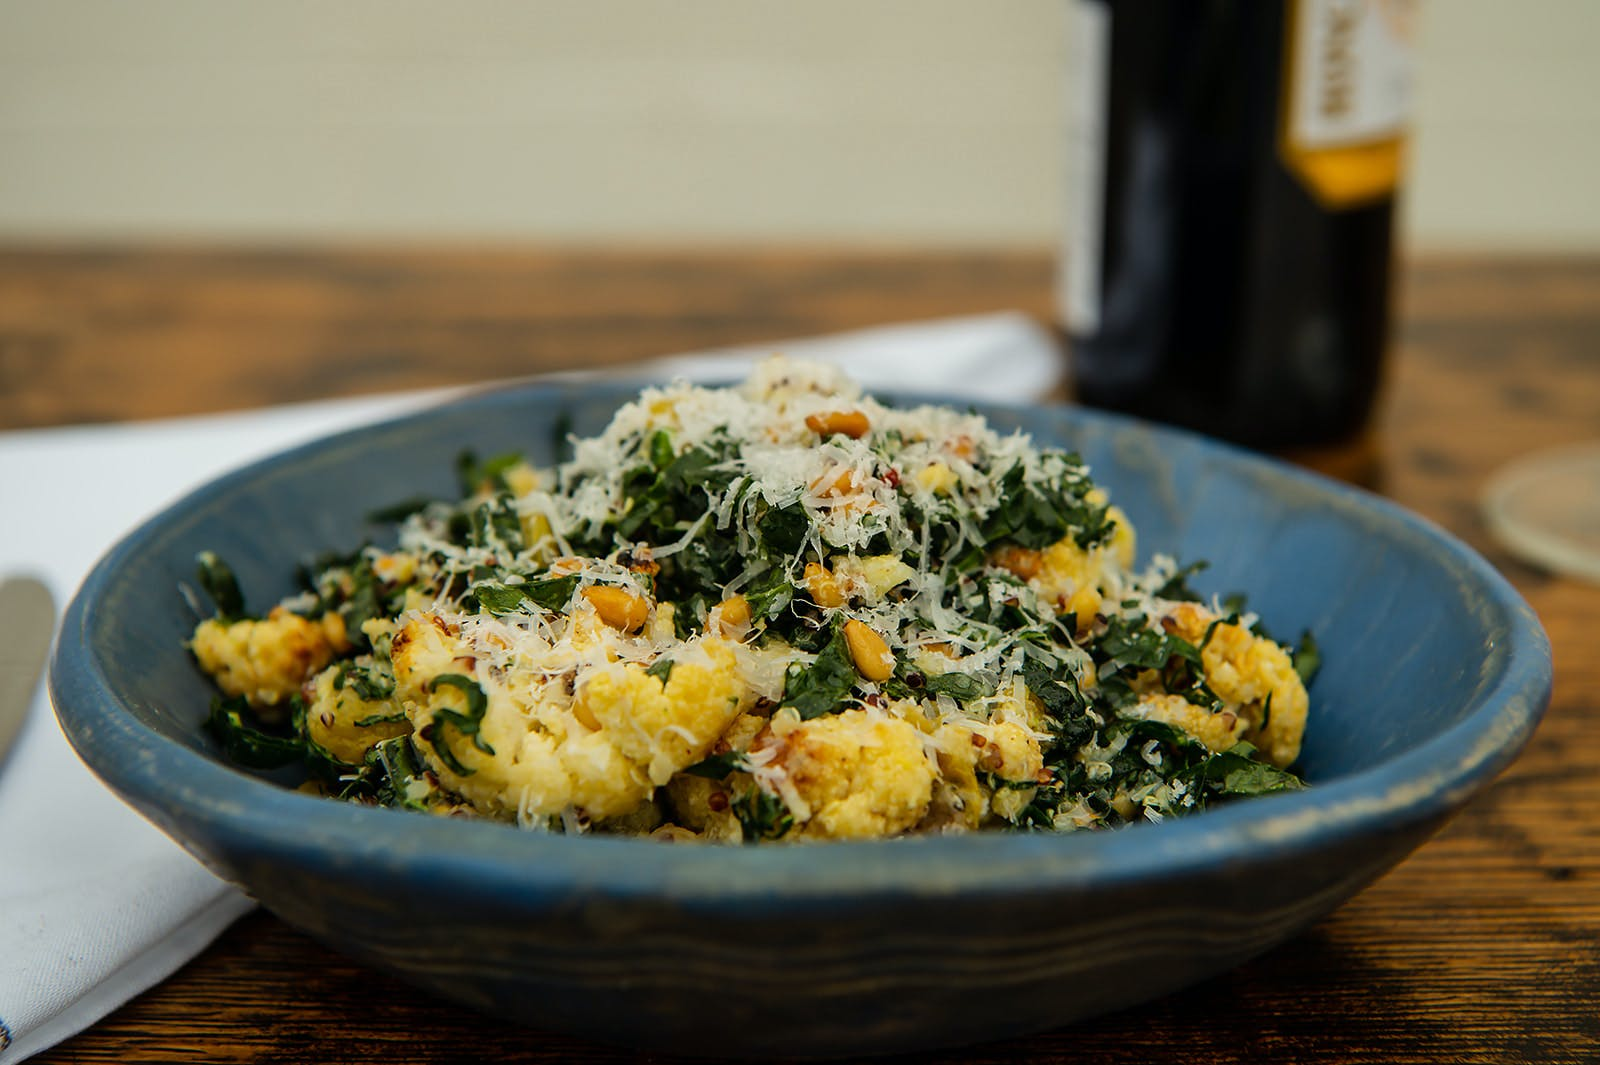 Pasta with grated cheese and greens